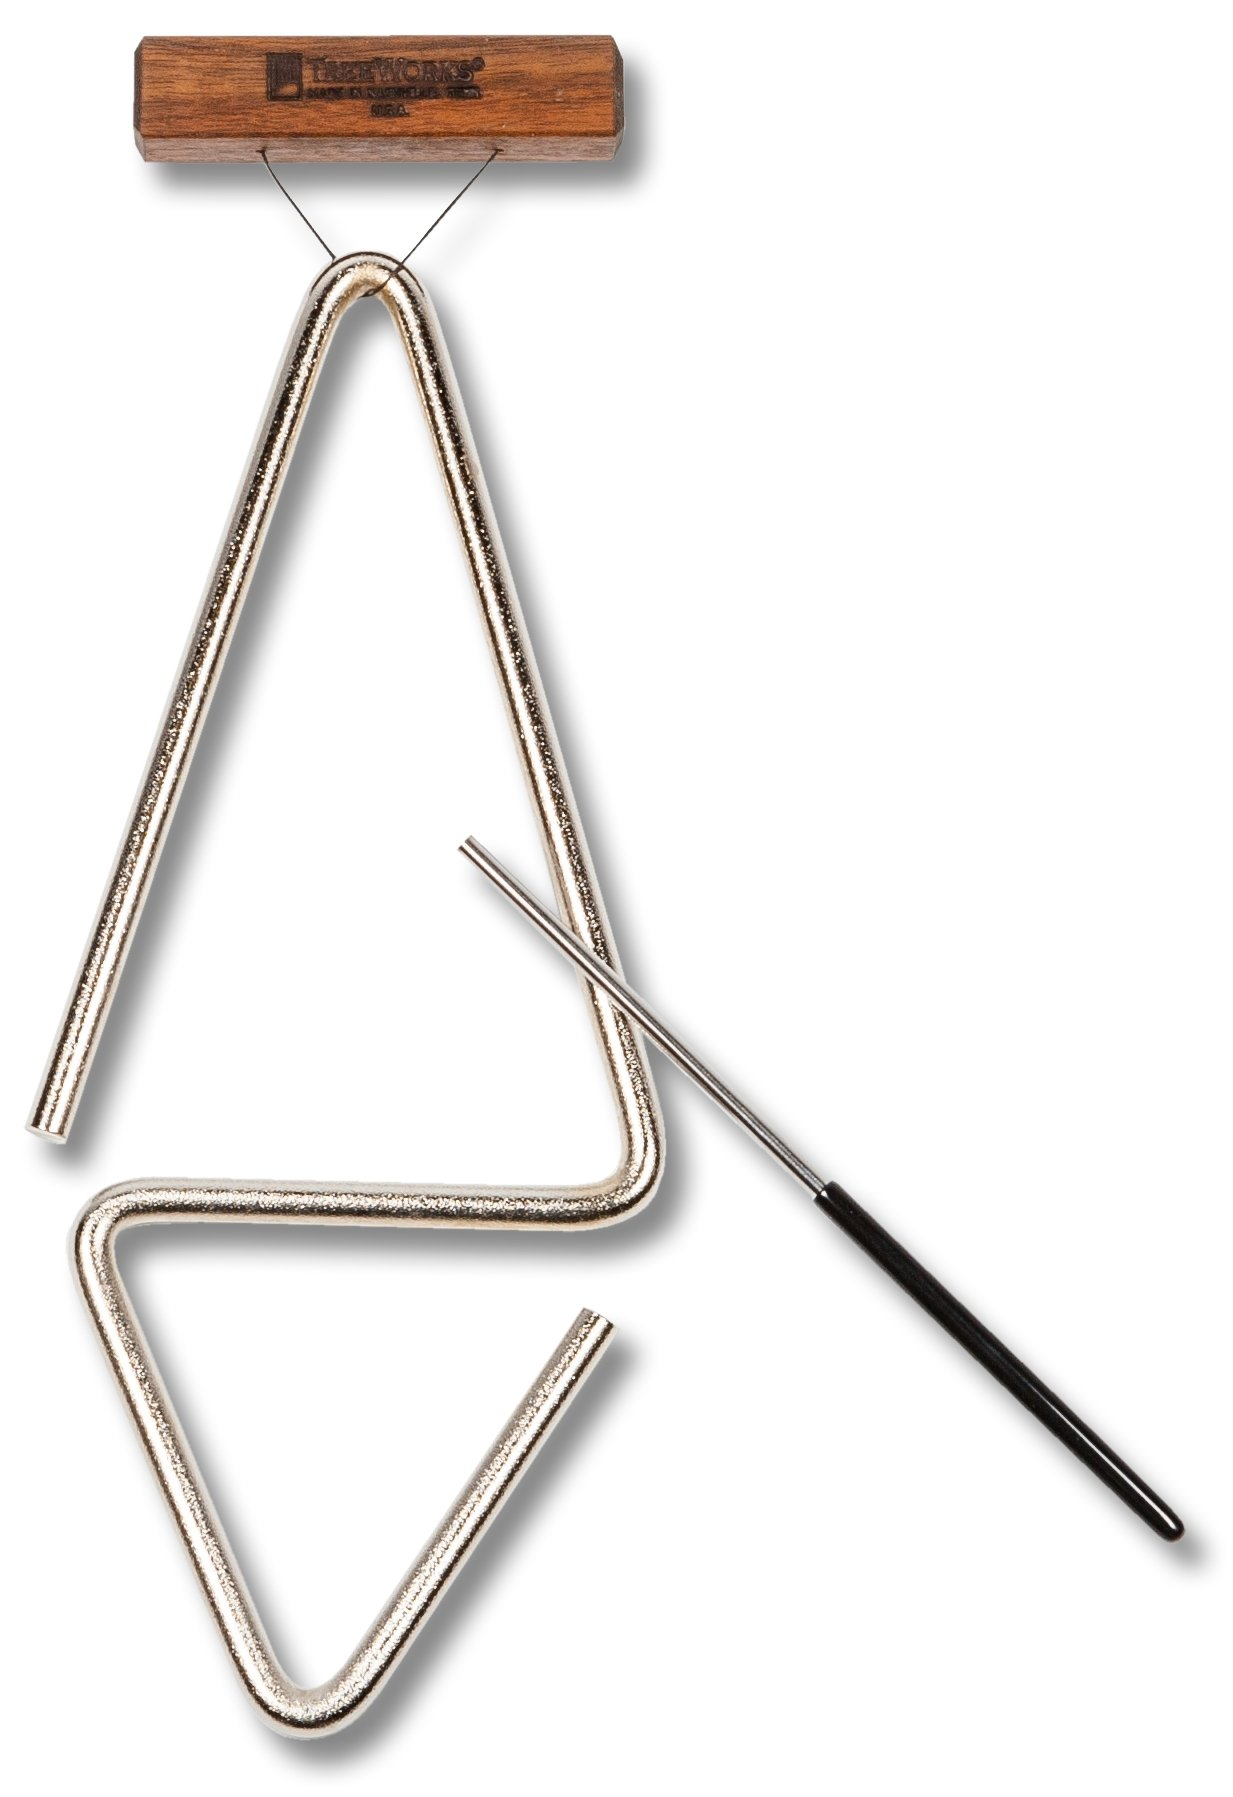 TreeWorks Chimes TRE1d Made in USA Double-Sided Studio Triangle with Holder and Beater